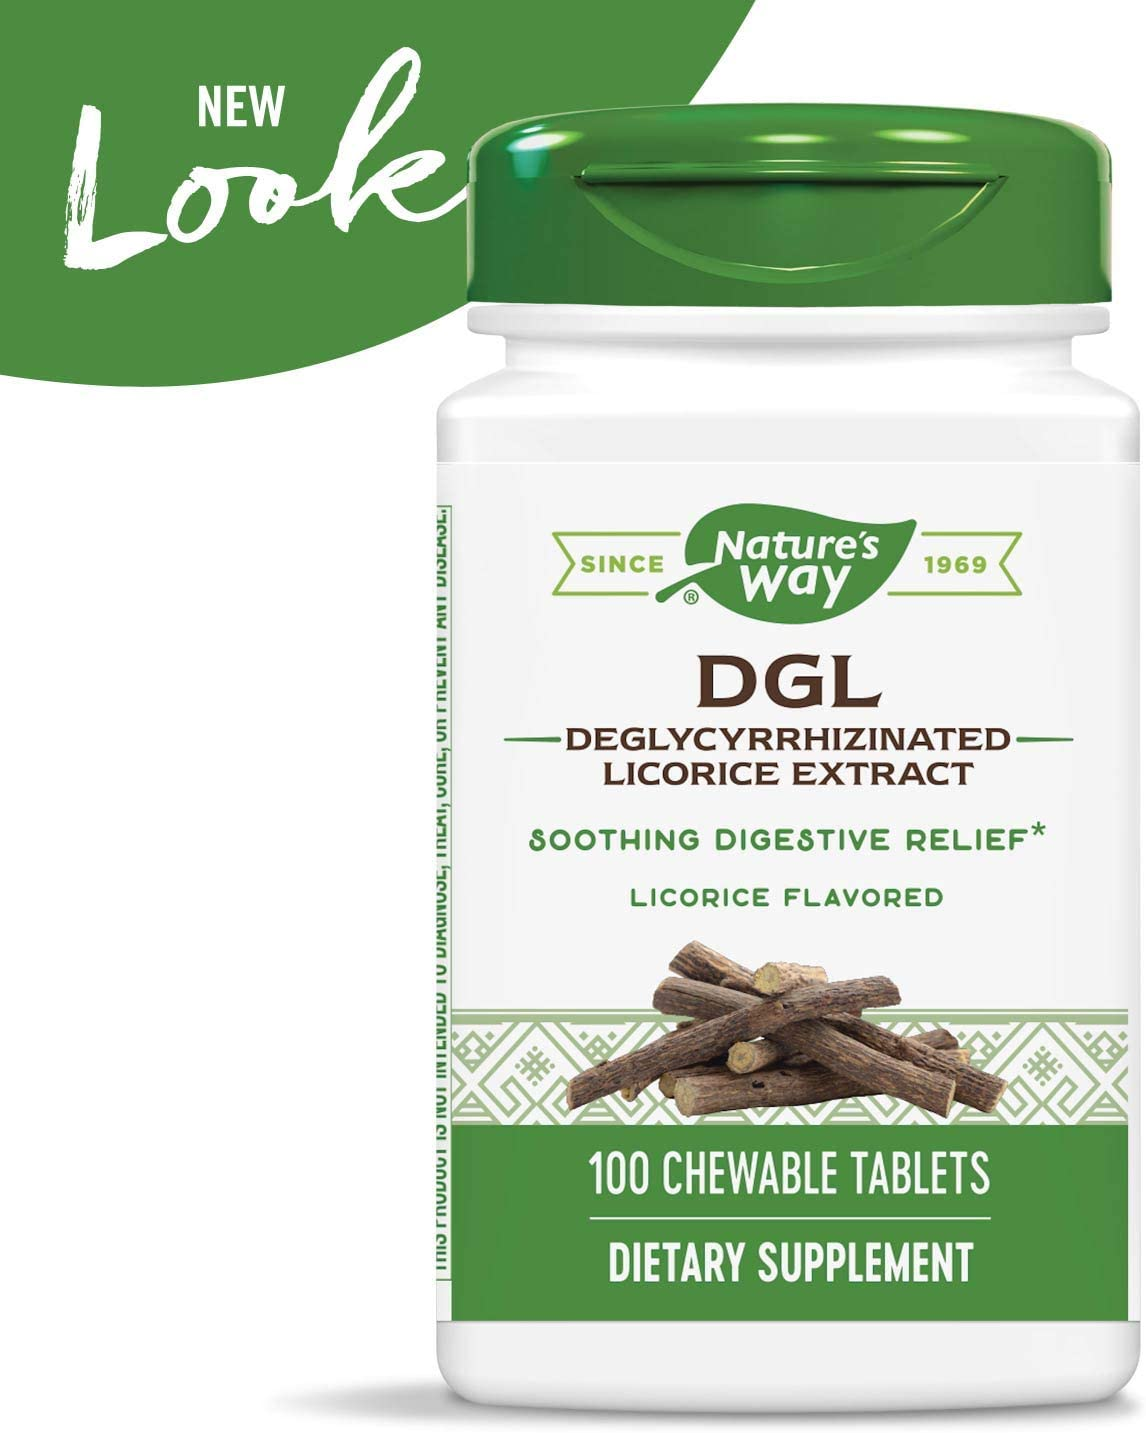 Nature's Way DGL - Licorice Flavored